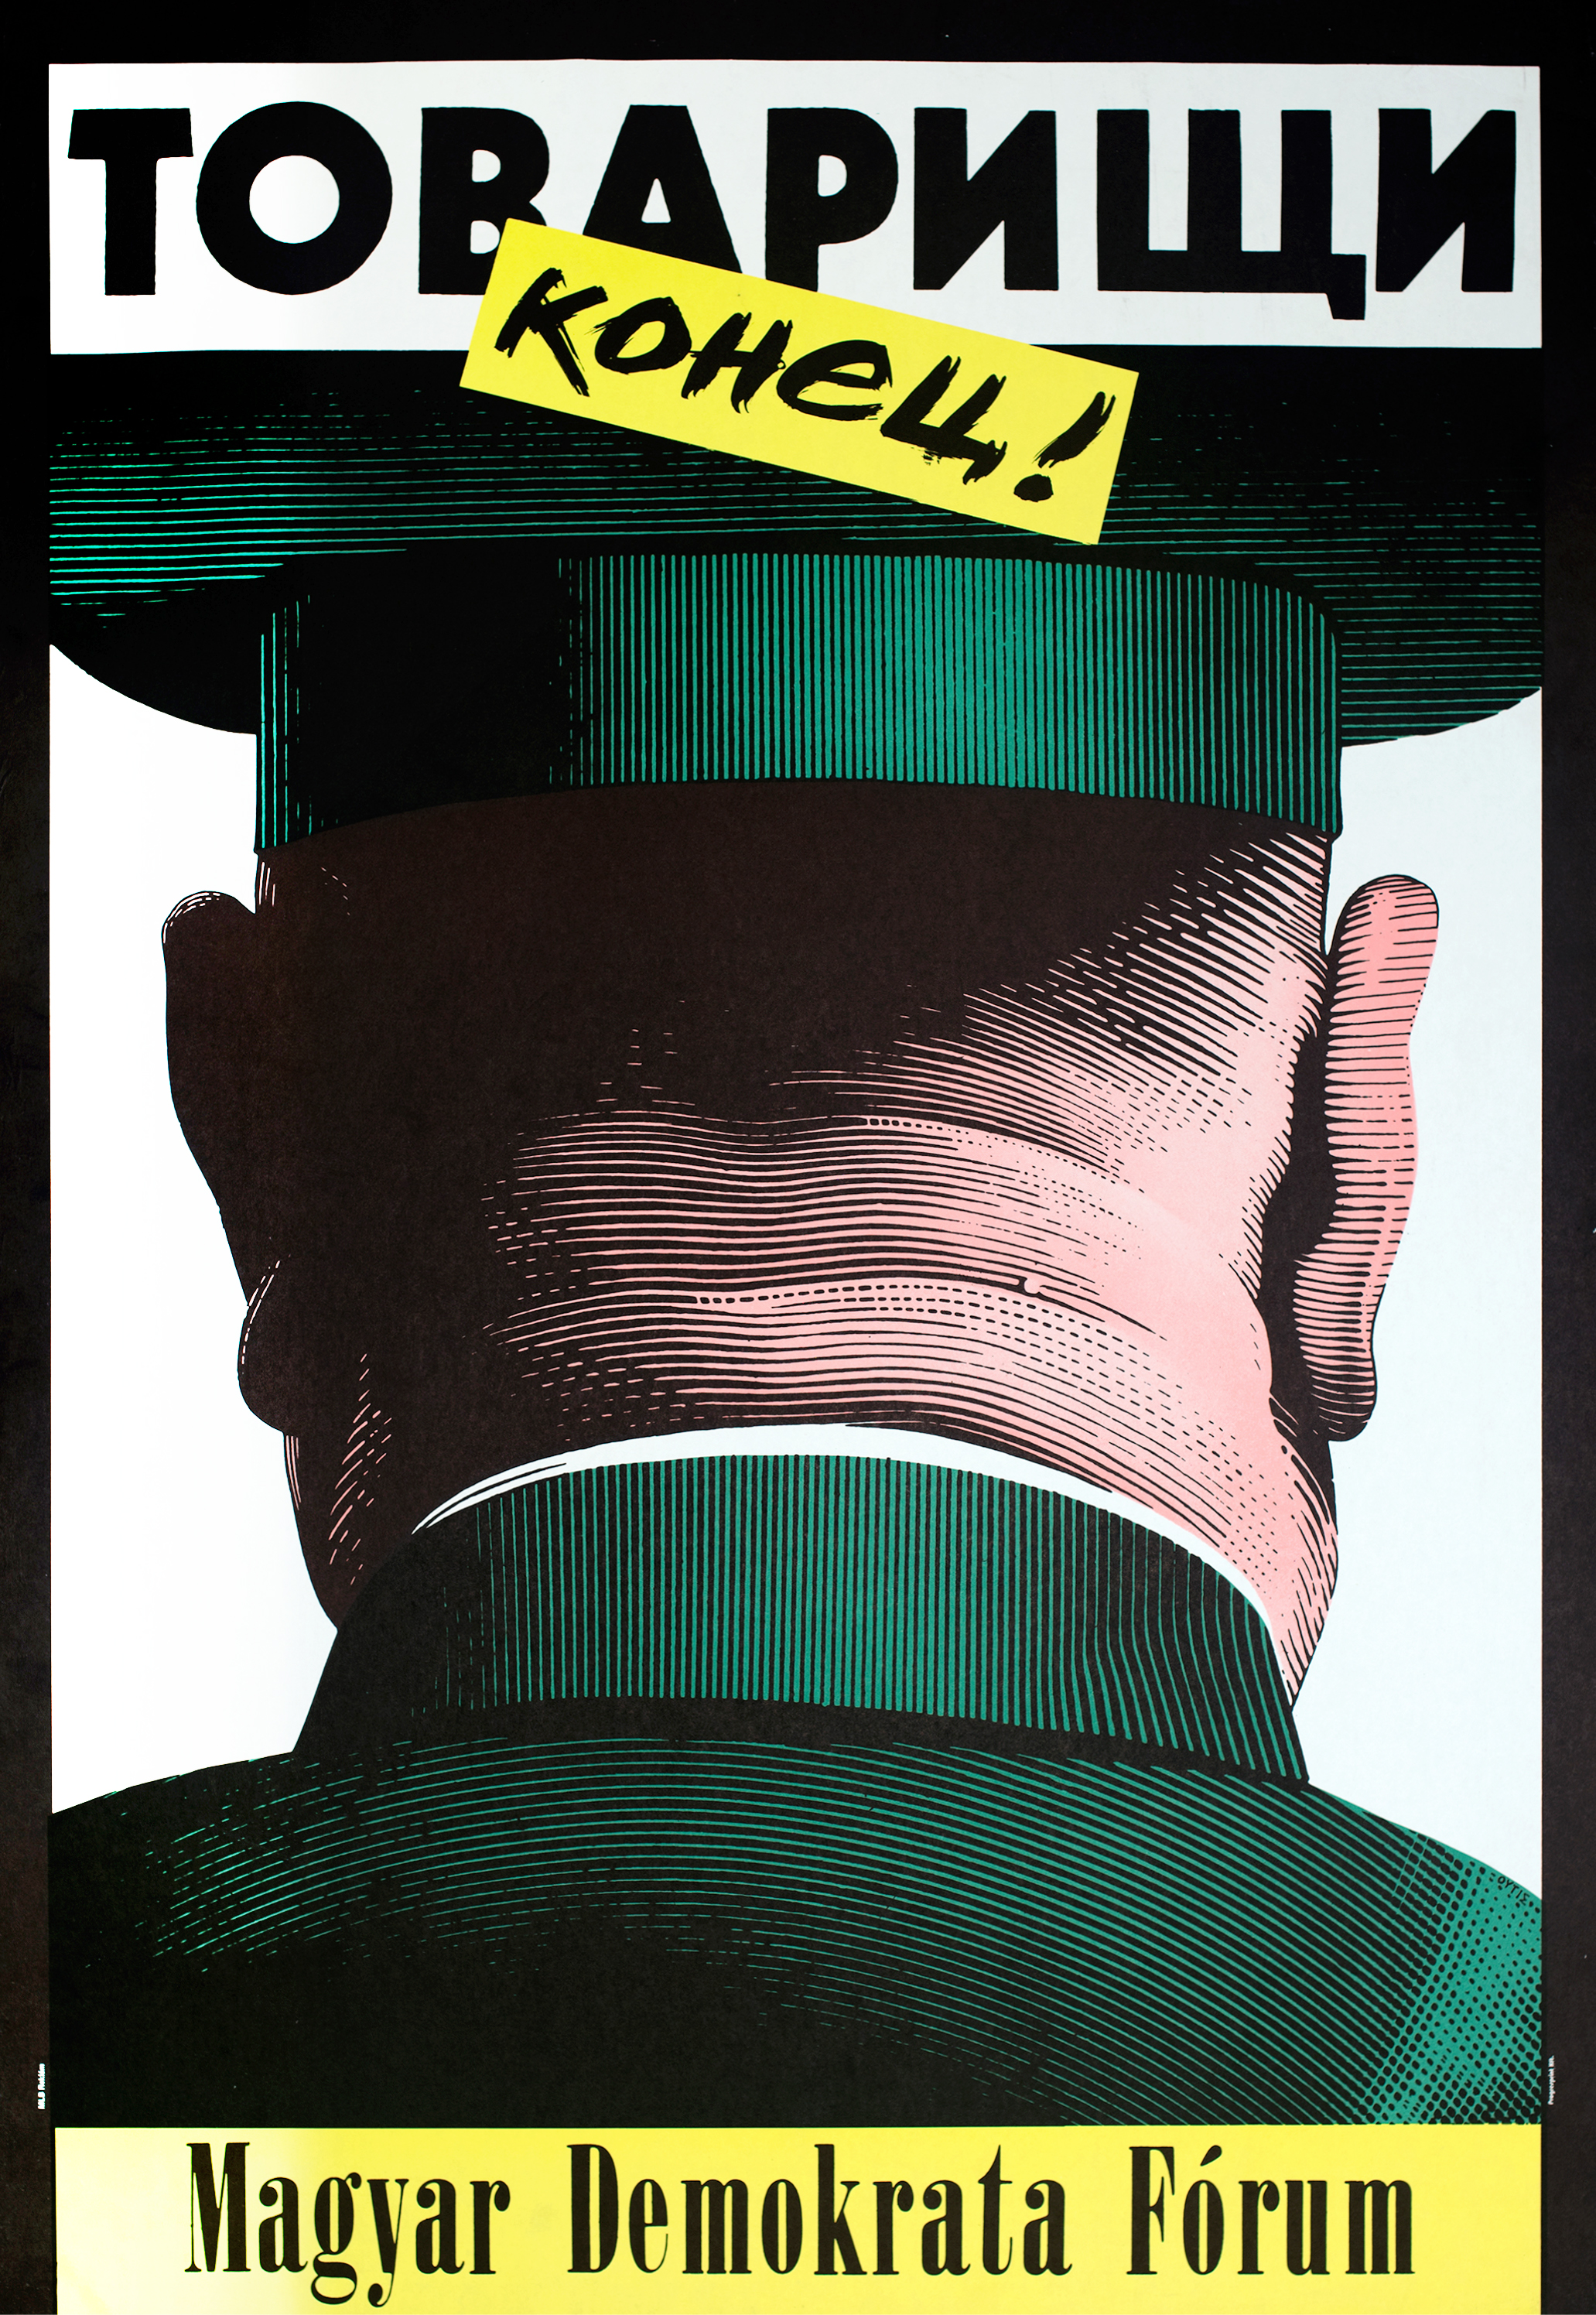 A detailed illustration of the back of a man's head. He is wearing a green hat and uniform, with black and yellow Cyrillic text overlaid on top.